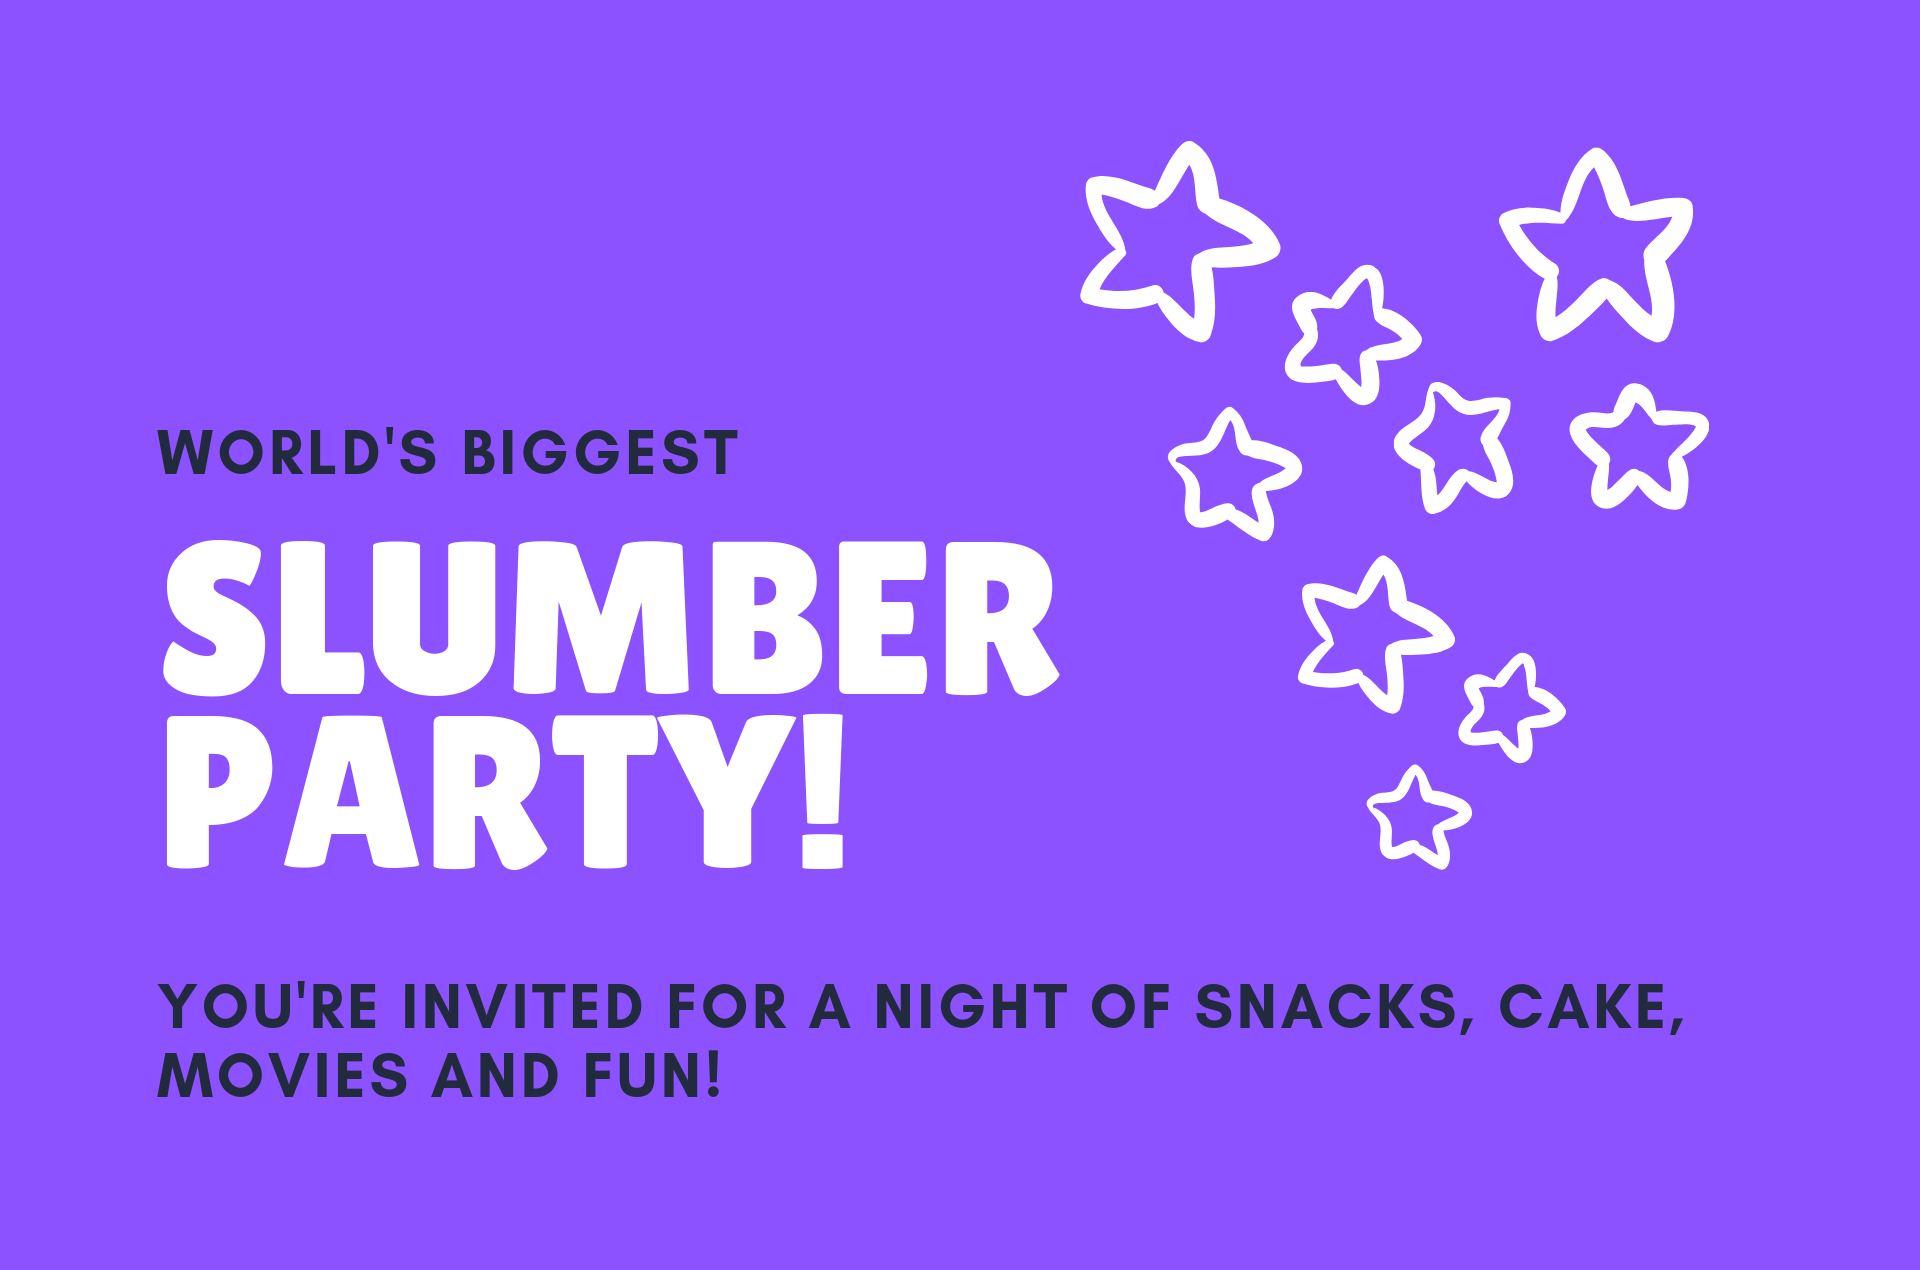 World's Biggest Slumber Party Fundraiser